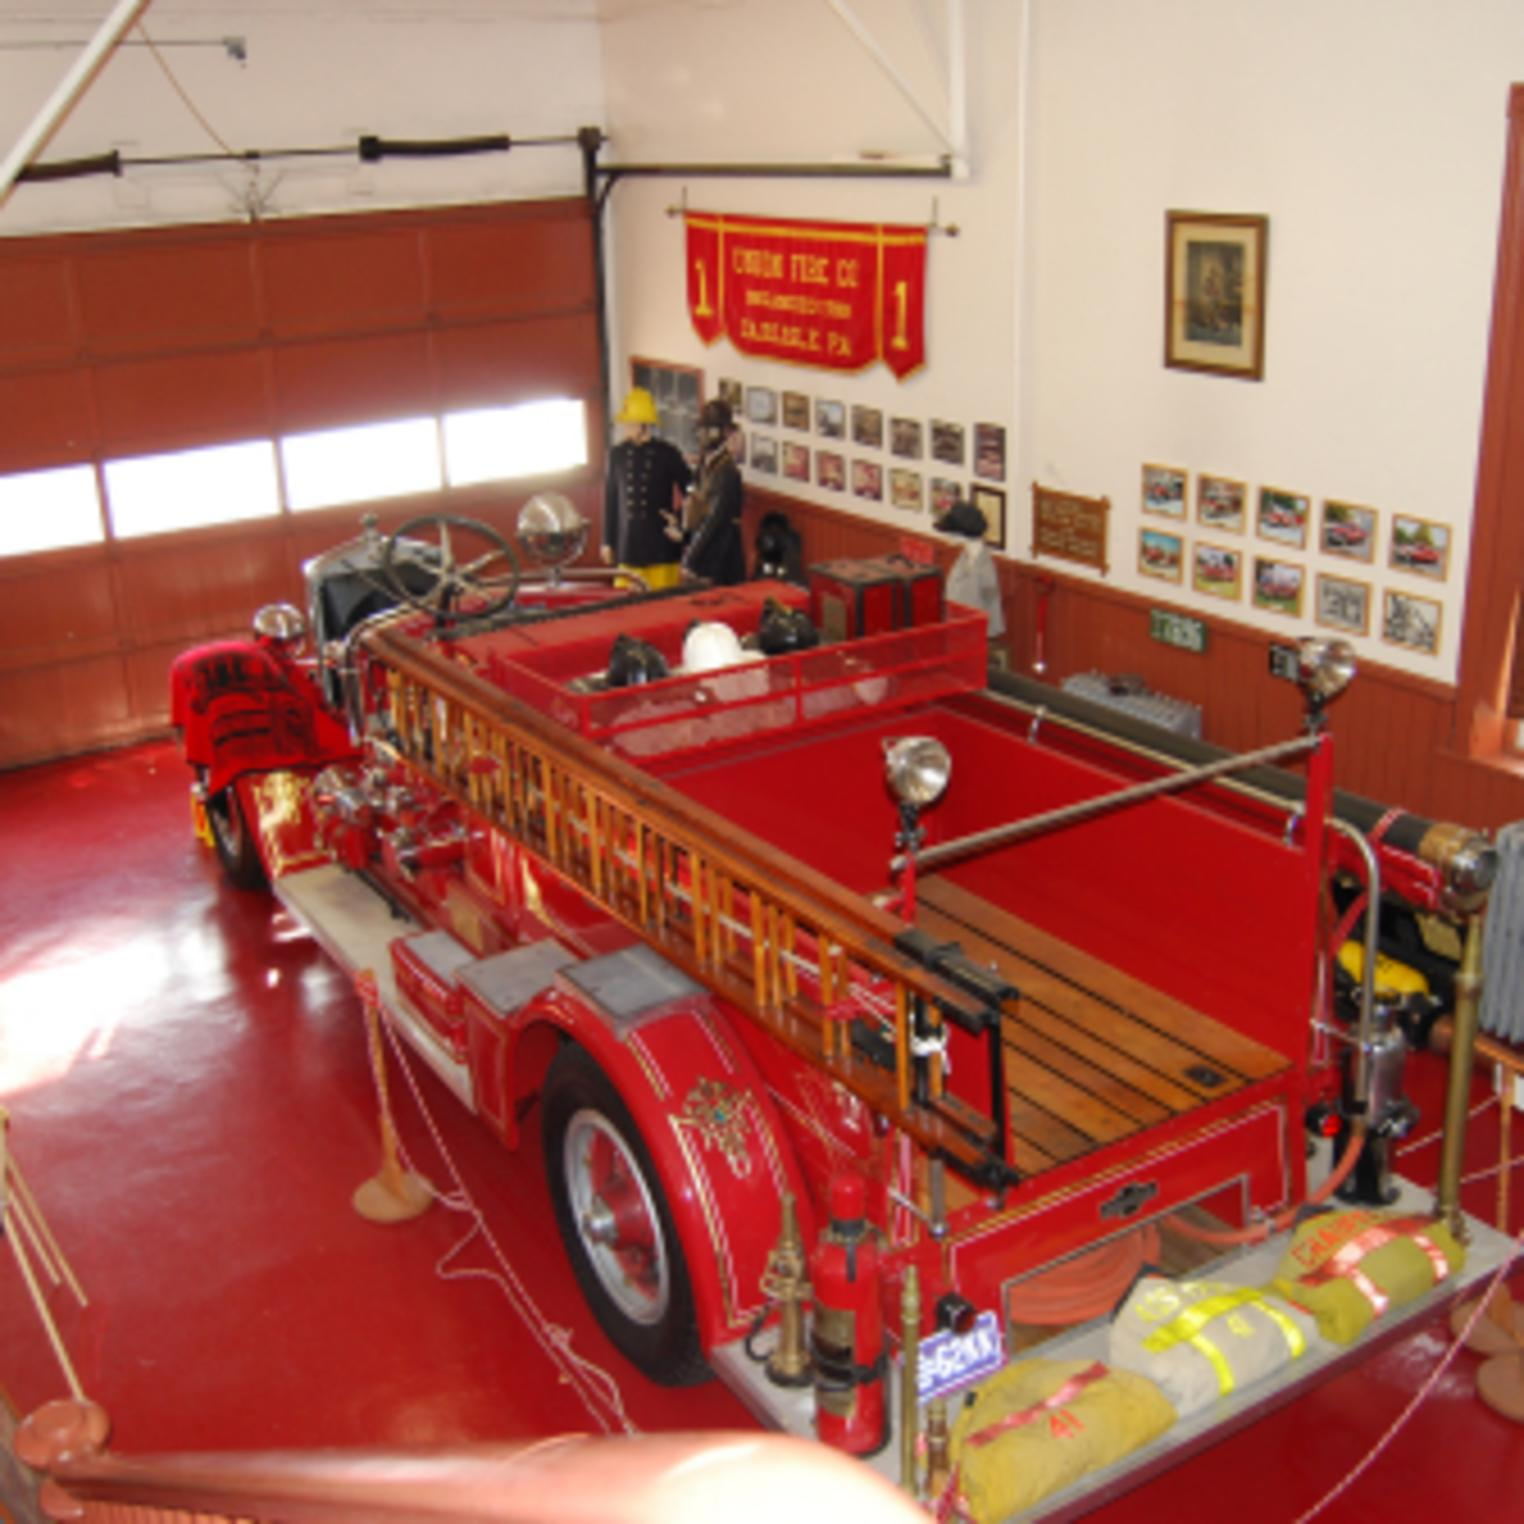 Firetruck Exhibit at the Union Fire Co. No. 1 Museum